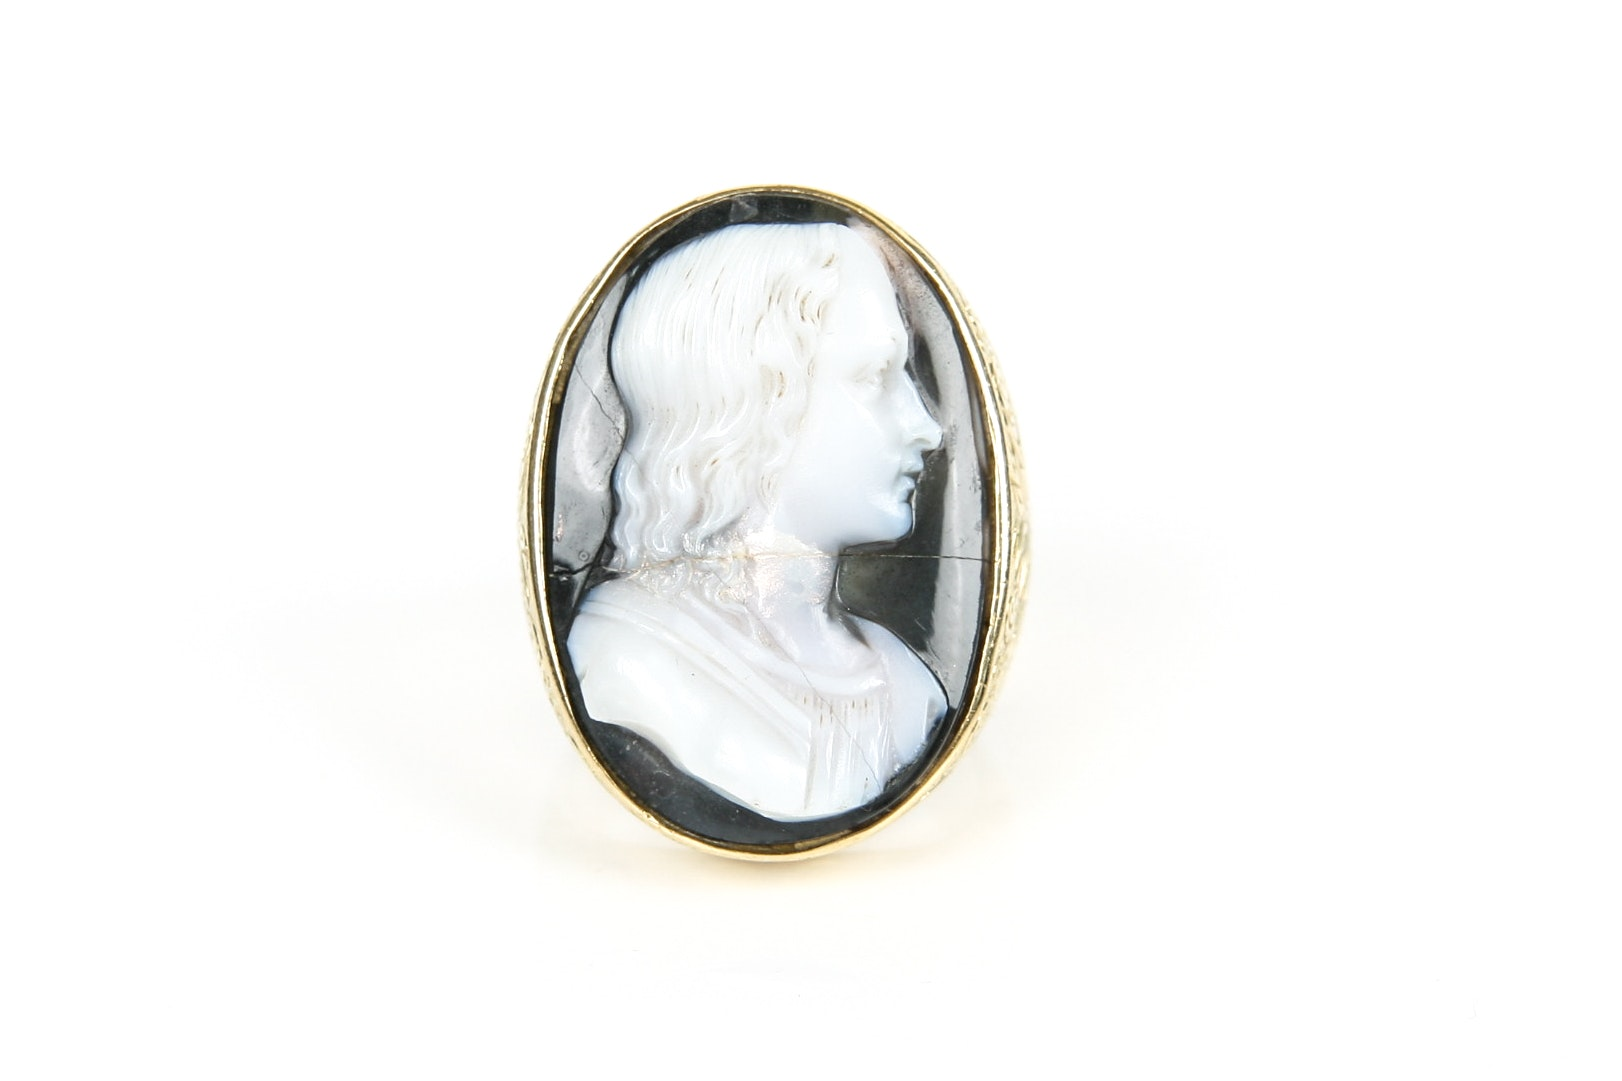 18K Yellow Gold Cameo Ring